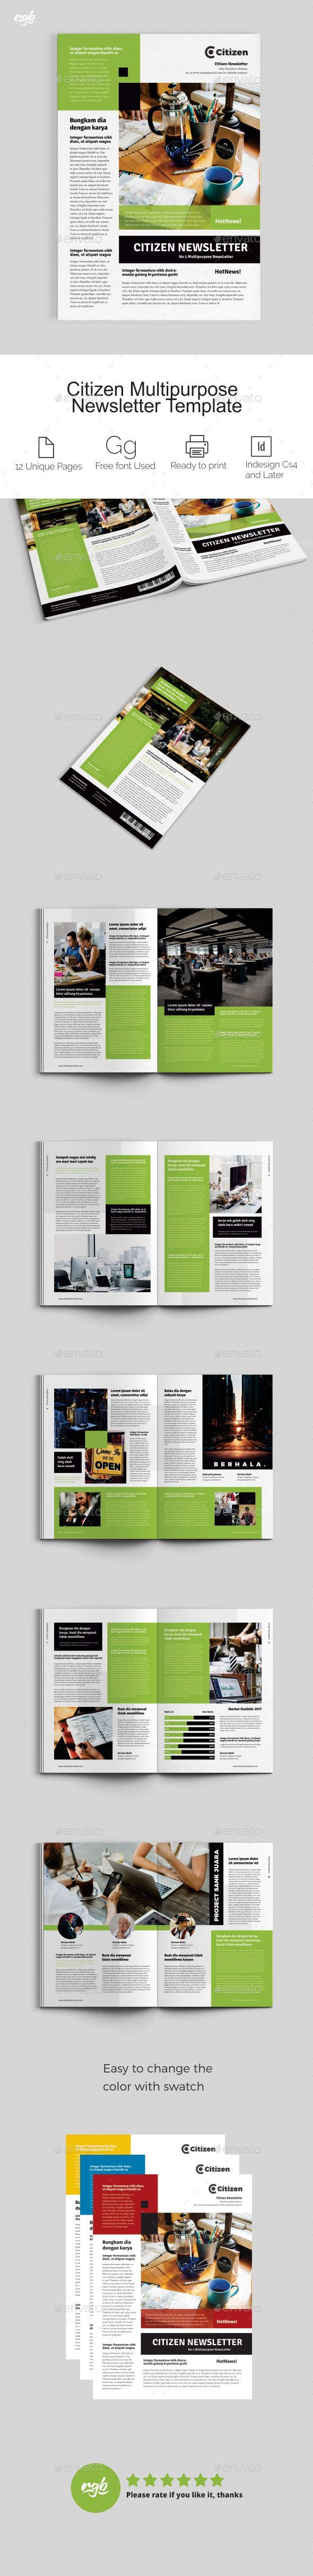 Citizen Multipurpose Newsletter Template InDesign INDD - A4 and US ...